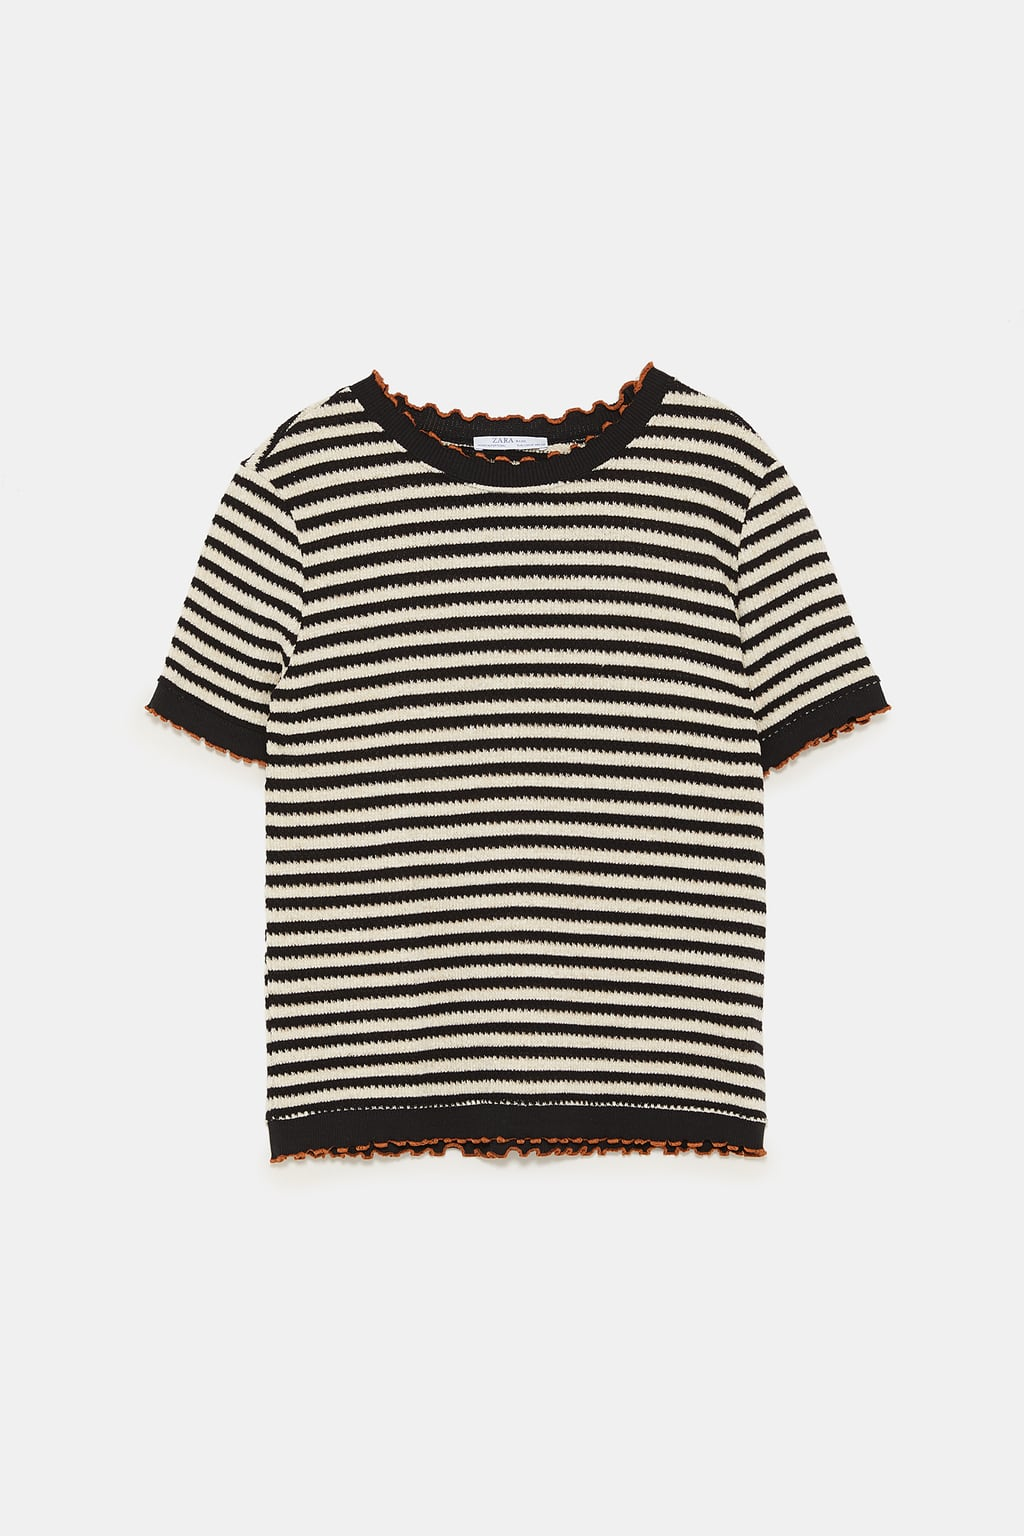 - Round neck short-sleeved sweater. Ruffly ribbed trim with contrasting piping. $29